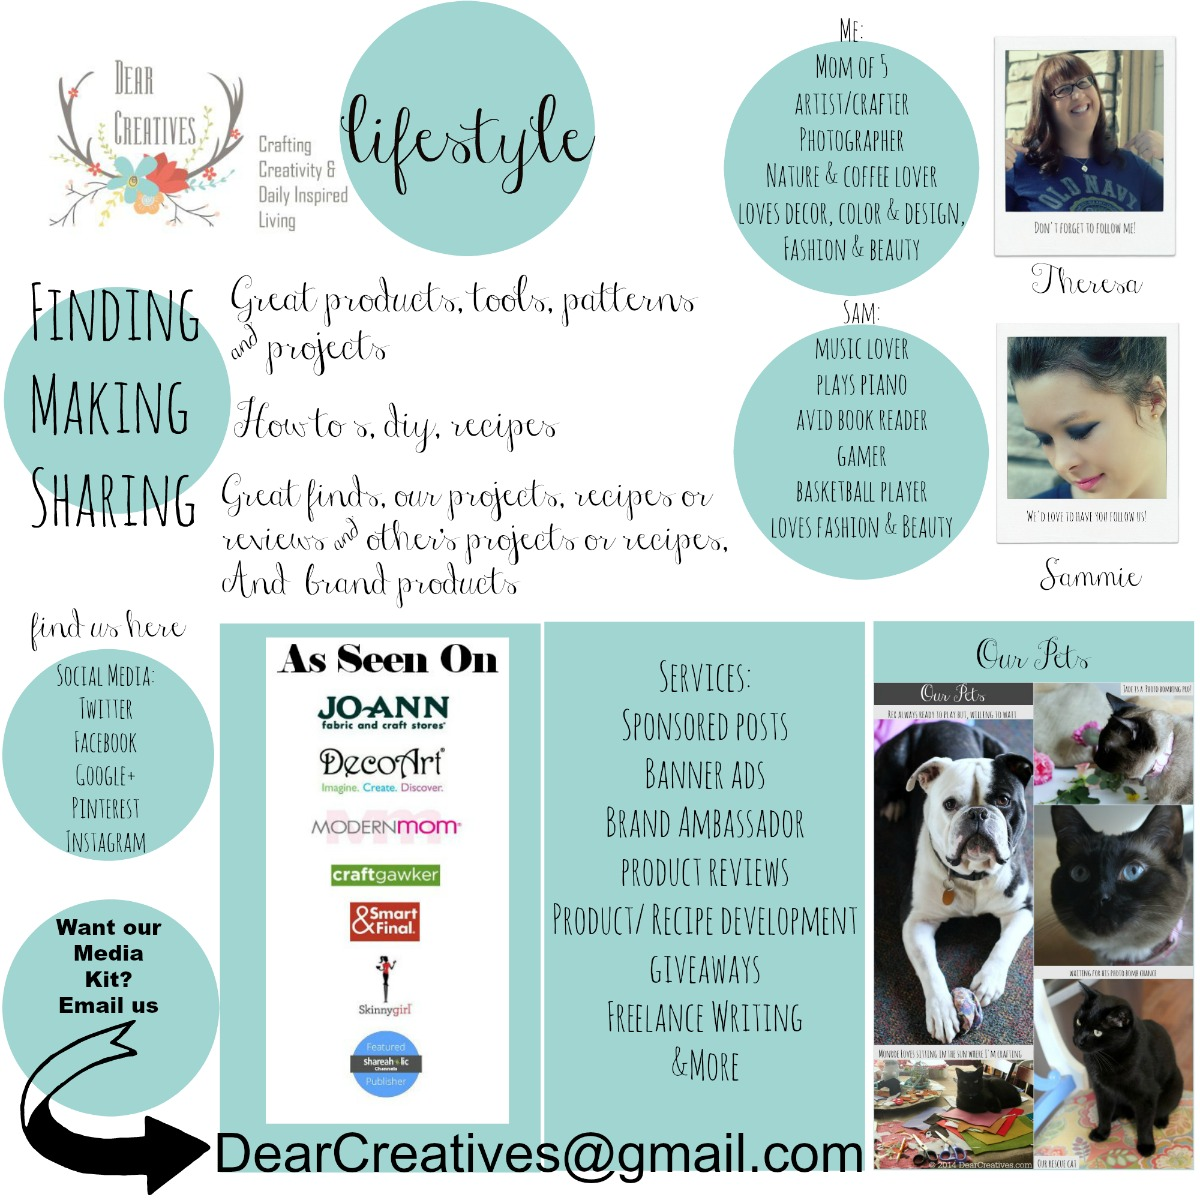 About Page_DearCreatives.com_© 2015 Theresa Huse a lifestyle site with DIY Crafts